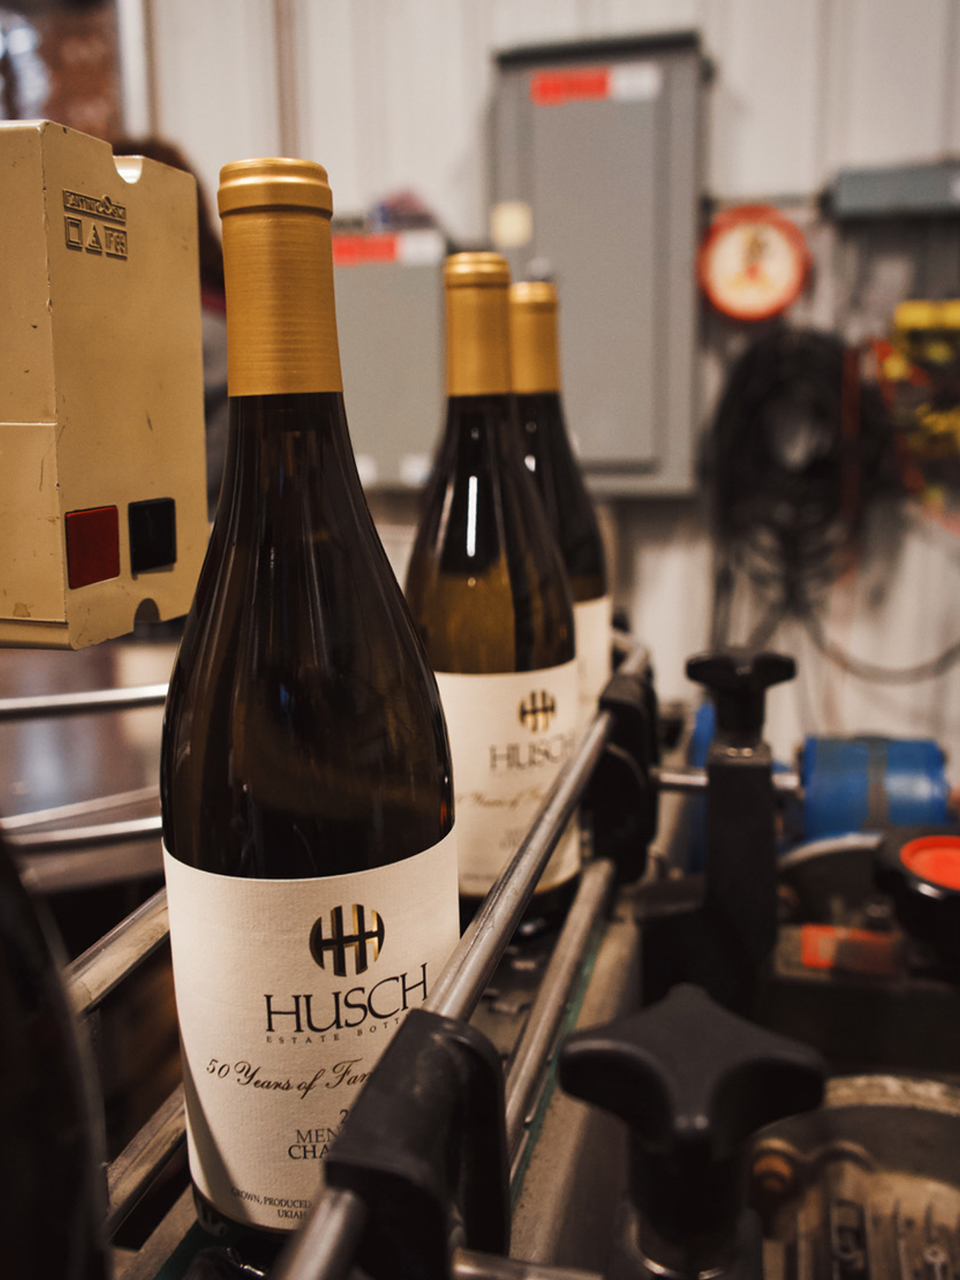 Husch Wine being bottled